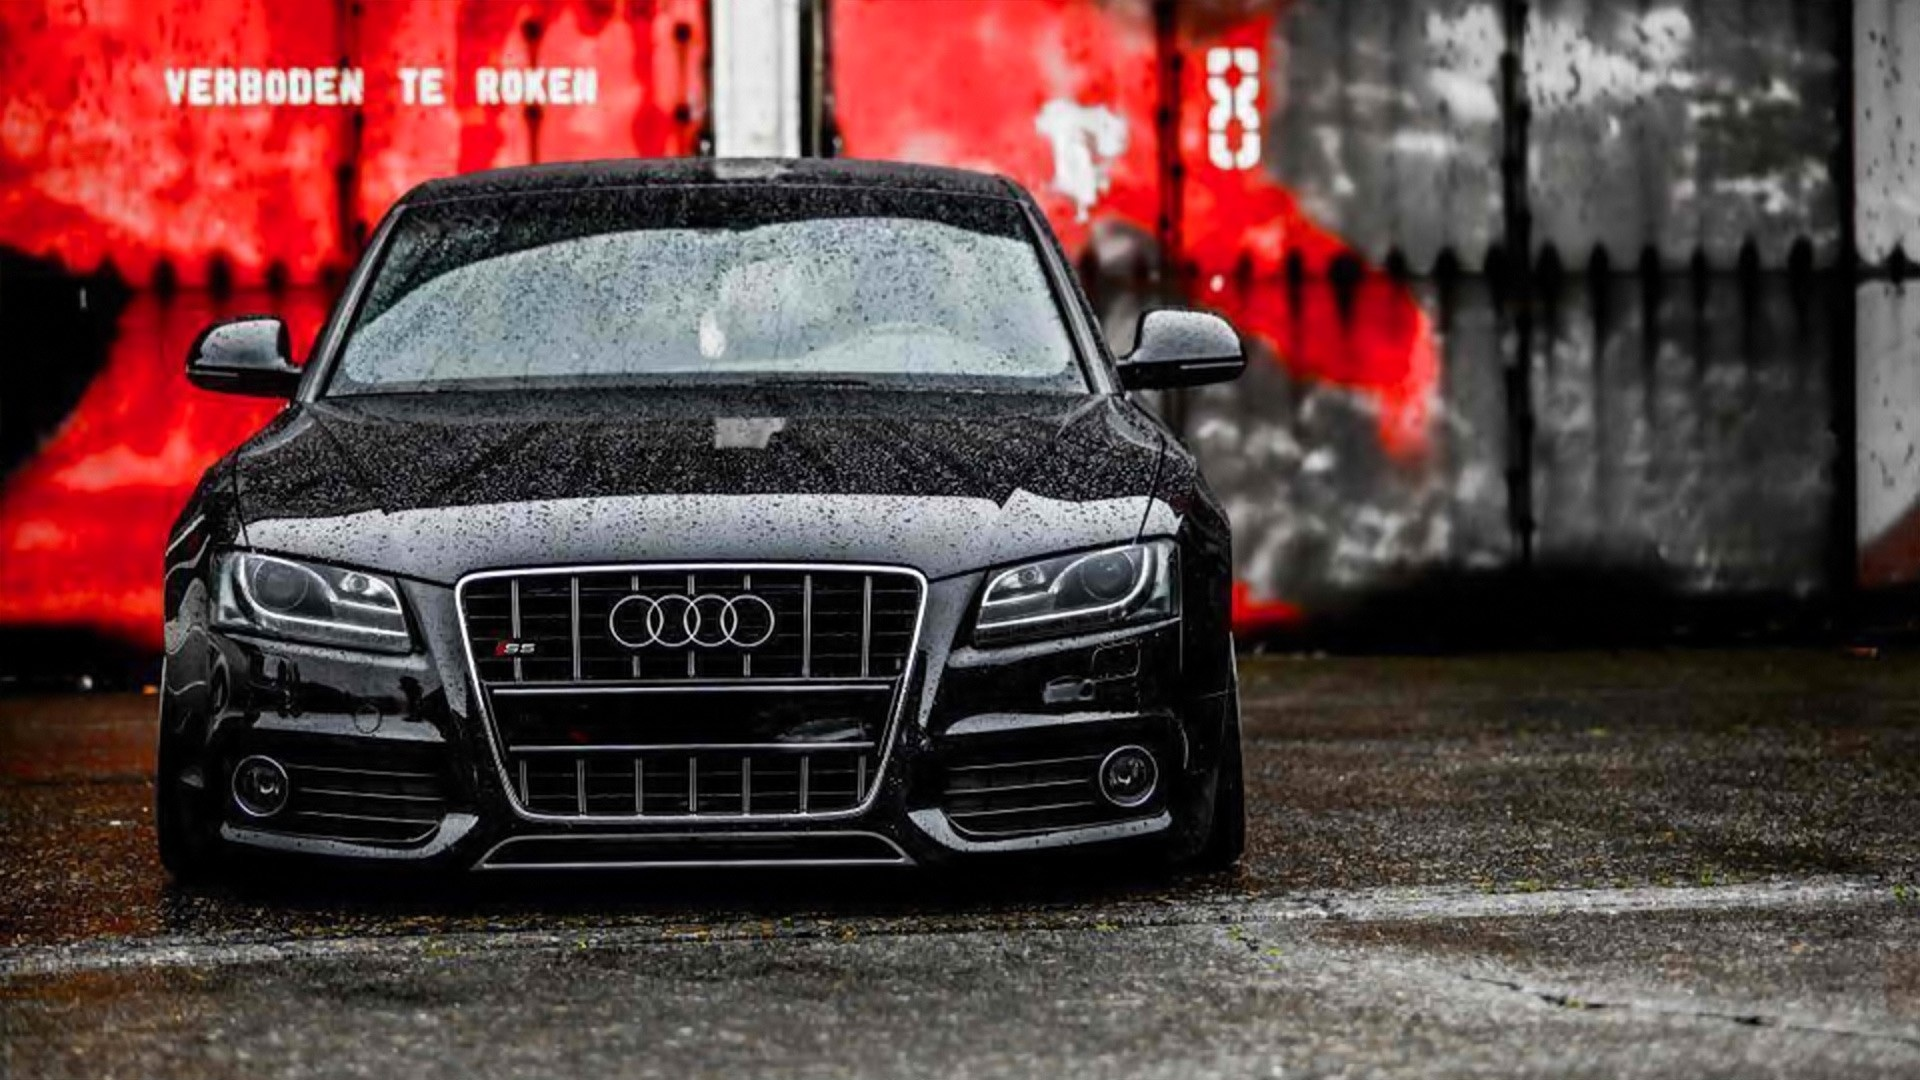 Audi Rs5 Wallpaper 37021 1920x1080 Px Hdwallsource Com